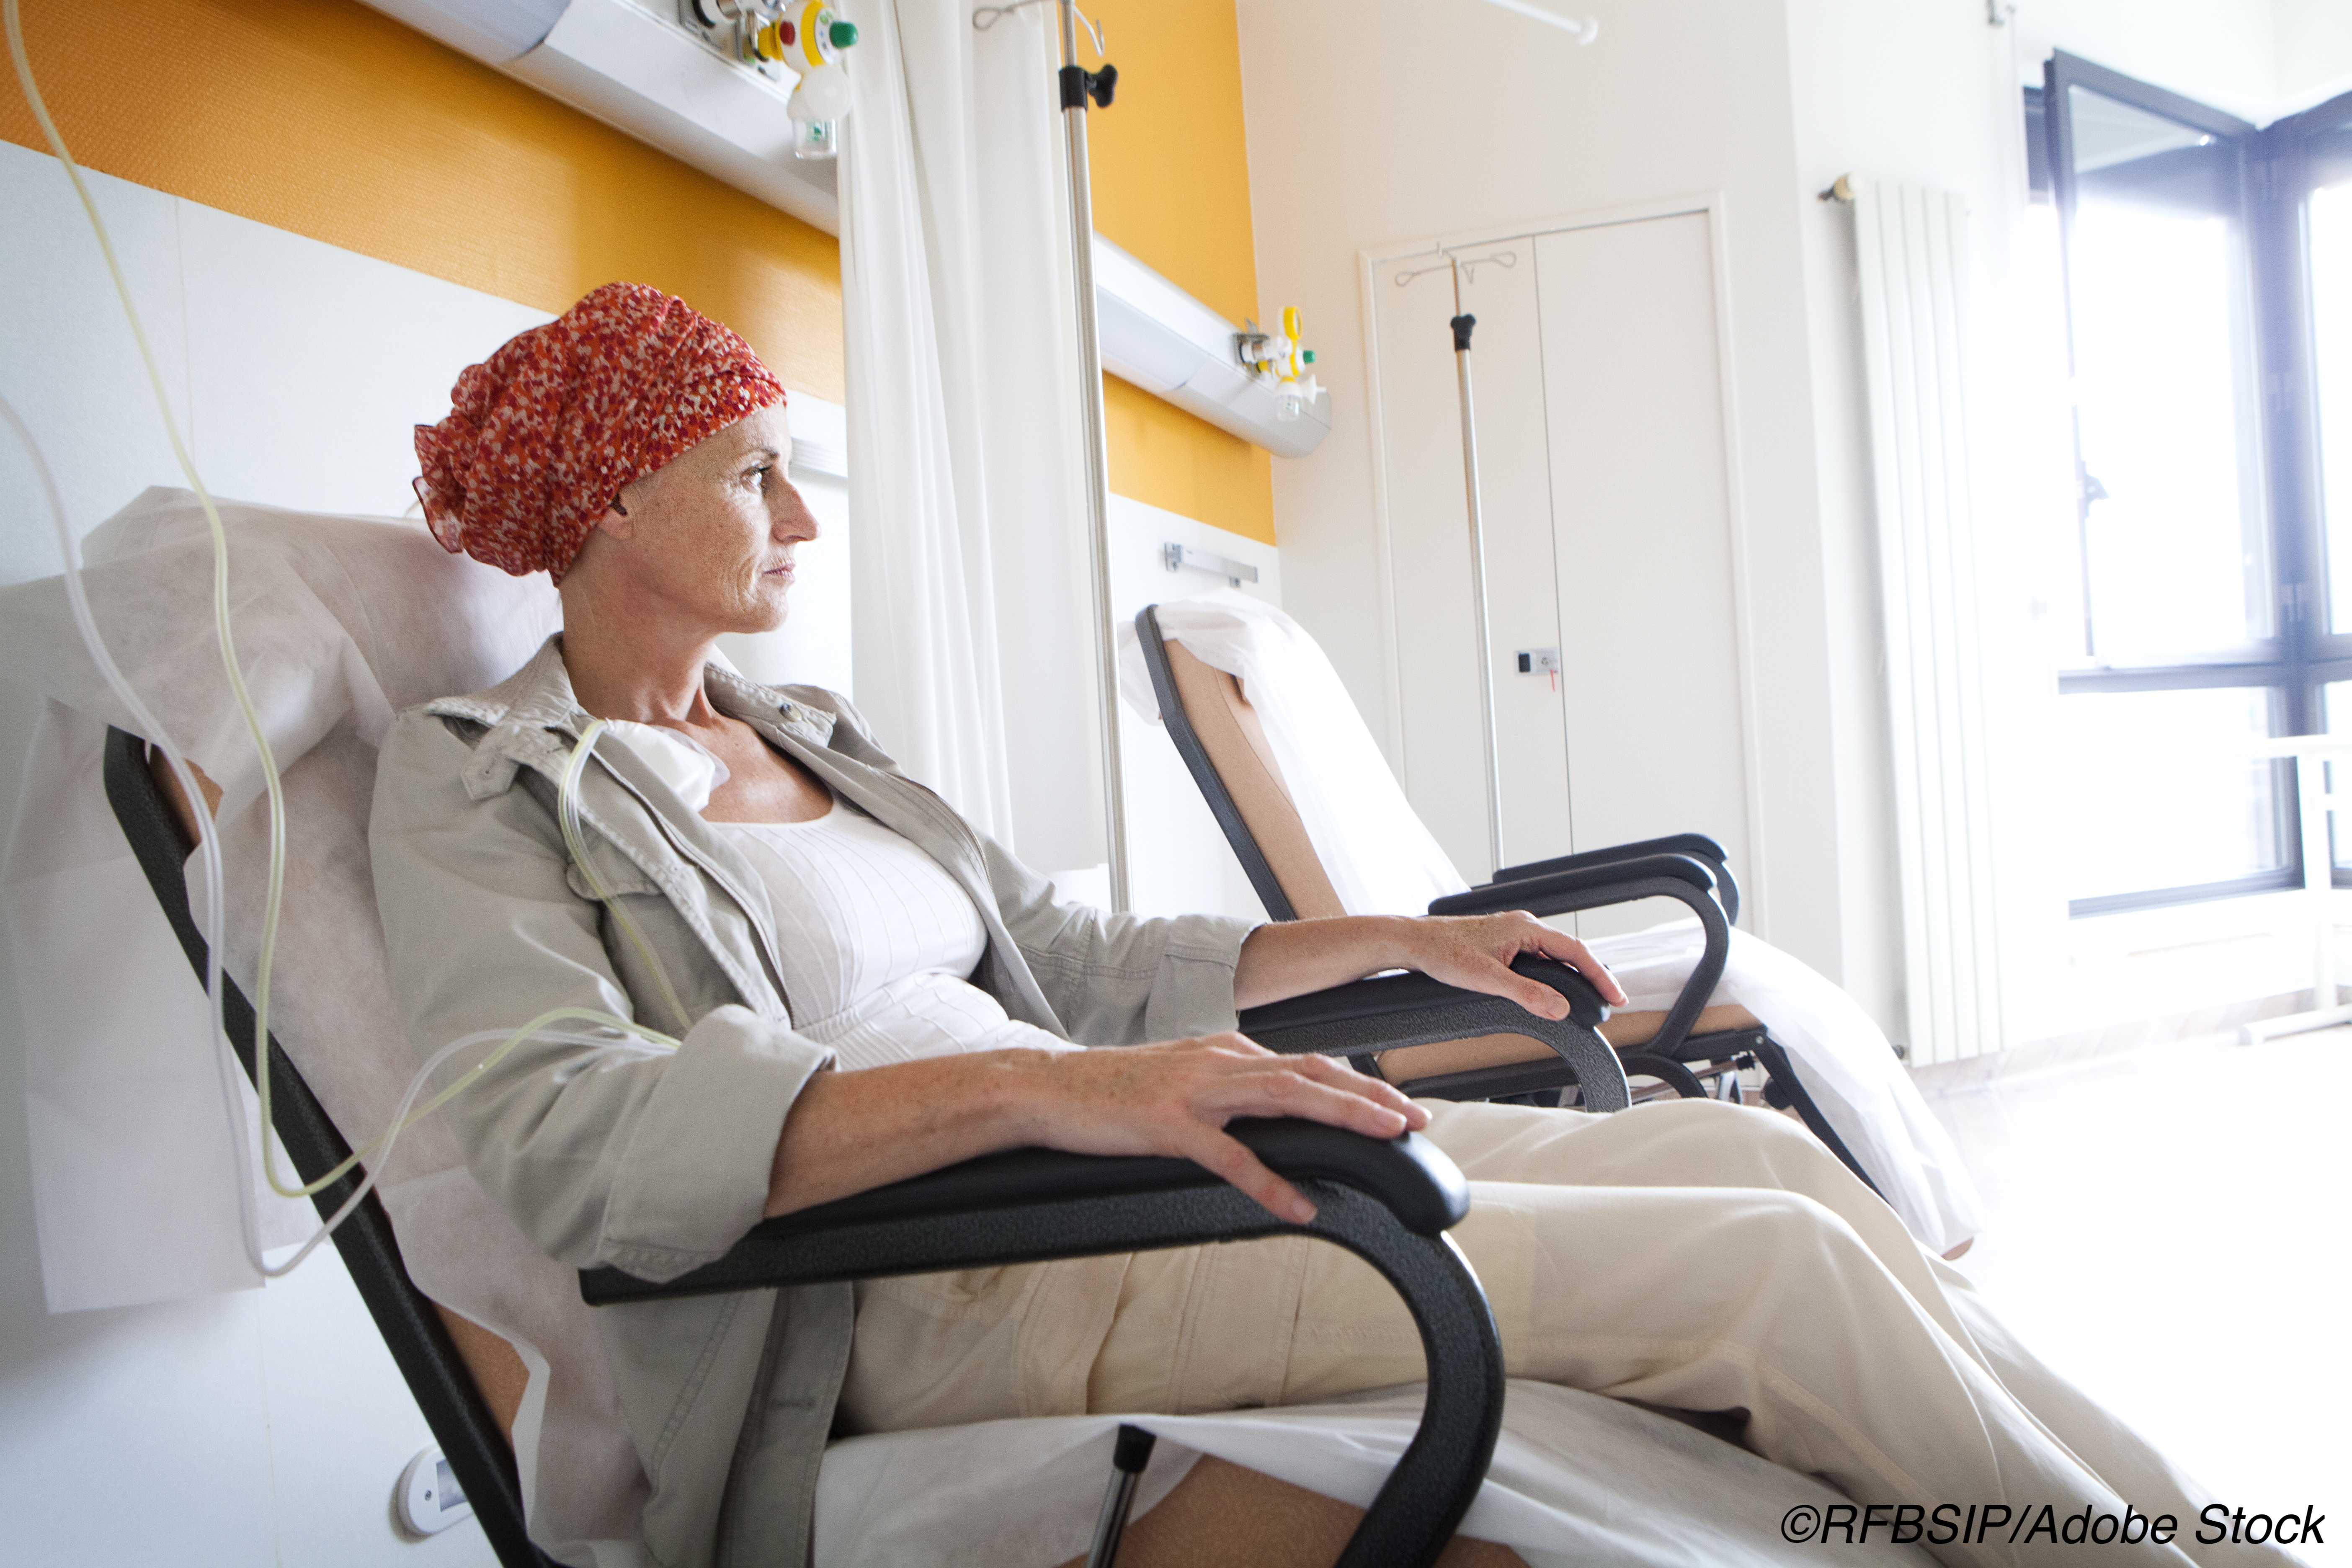 Delaying Cancer Treatment Increases Mortality Risk